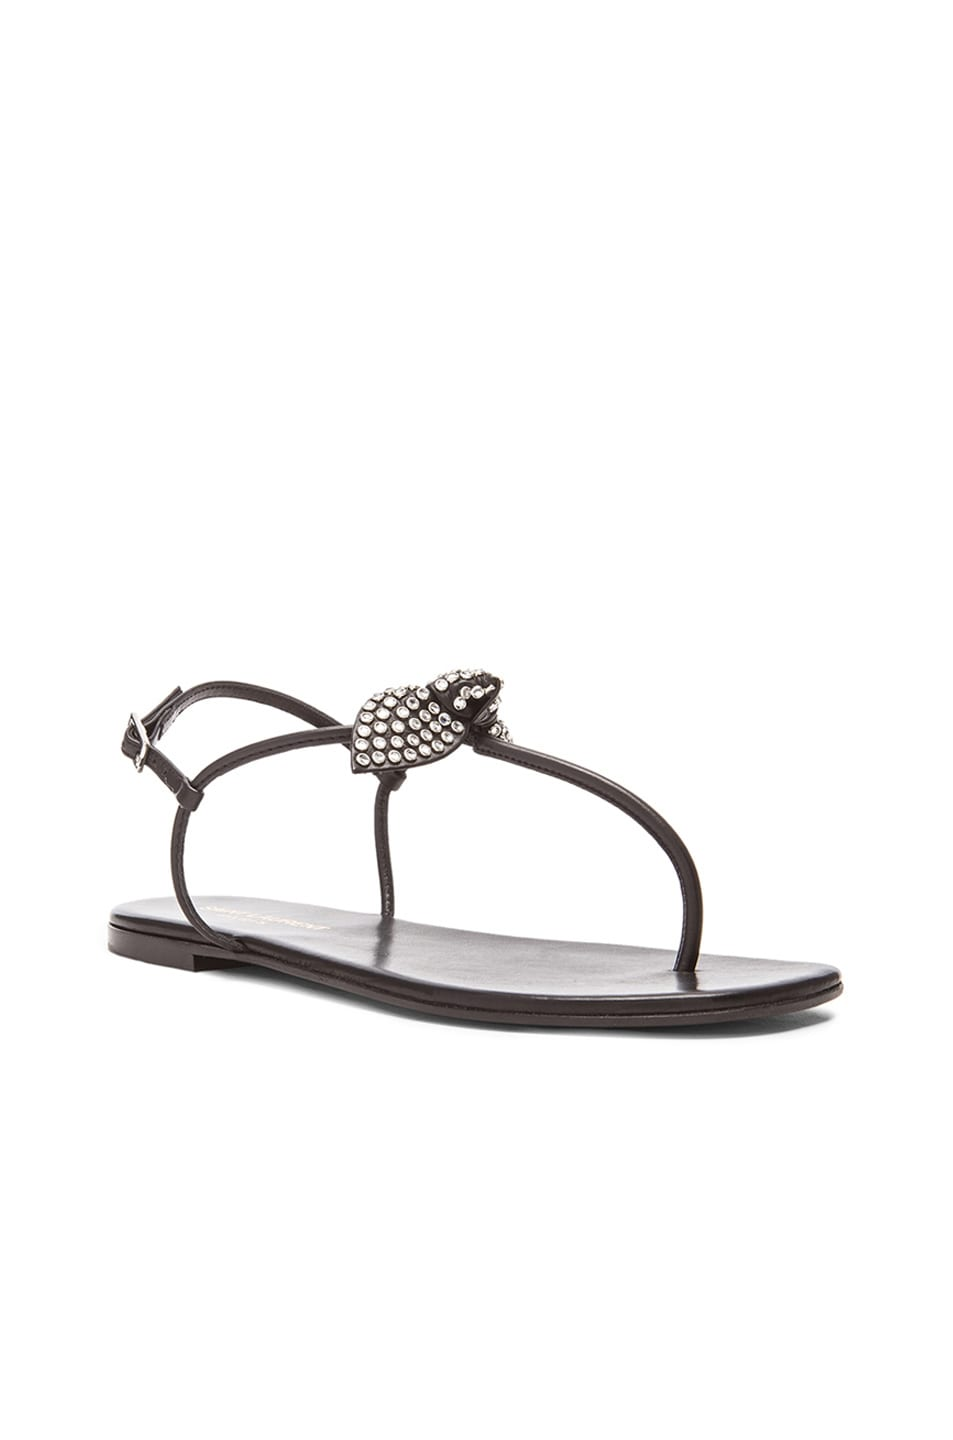 Image 2 of Saint Laurent Nu Pied Studded Bow Leather Sandals in Black